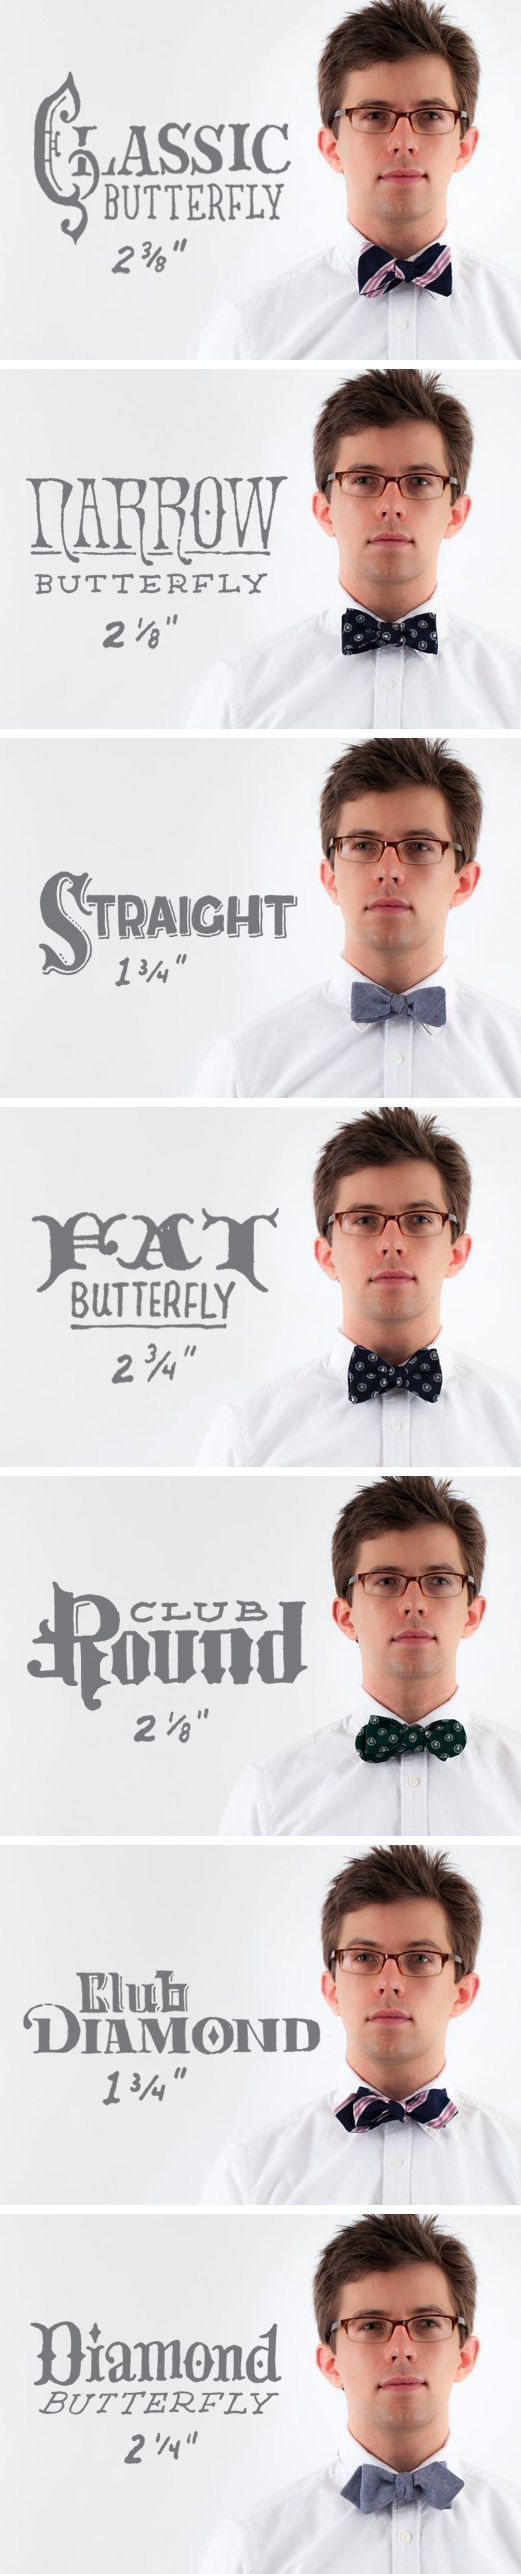 The Bow Tie Effect — Pocket Square Productions Women, Men and Kids Outfit Ideas on our website at 7ootd.com #ootd #7ootd